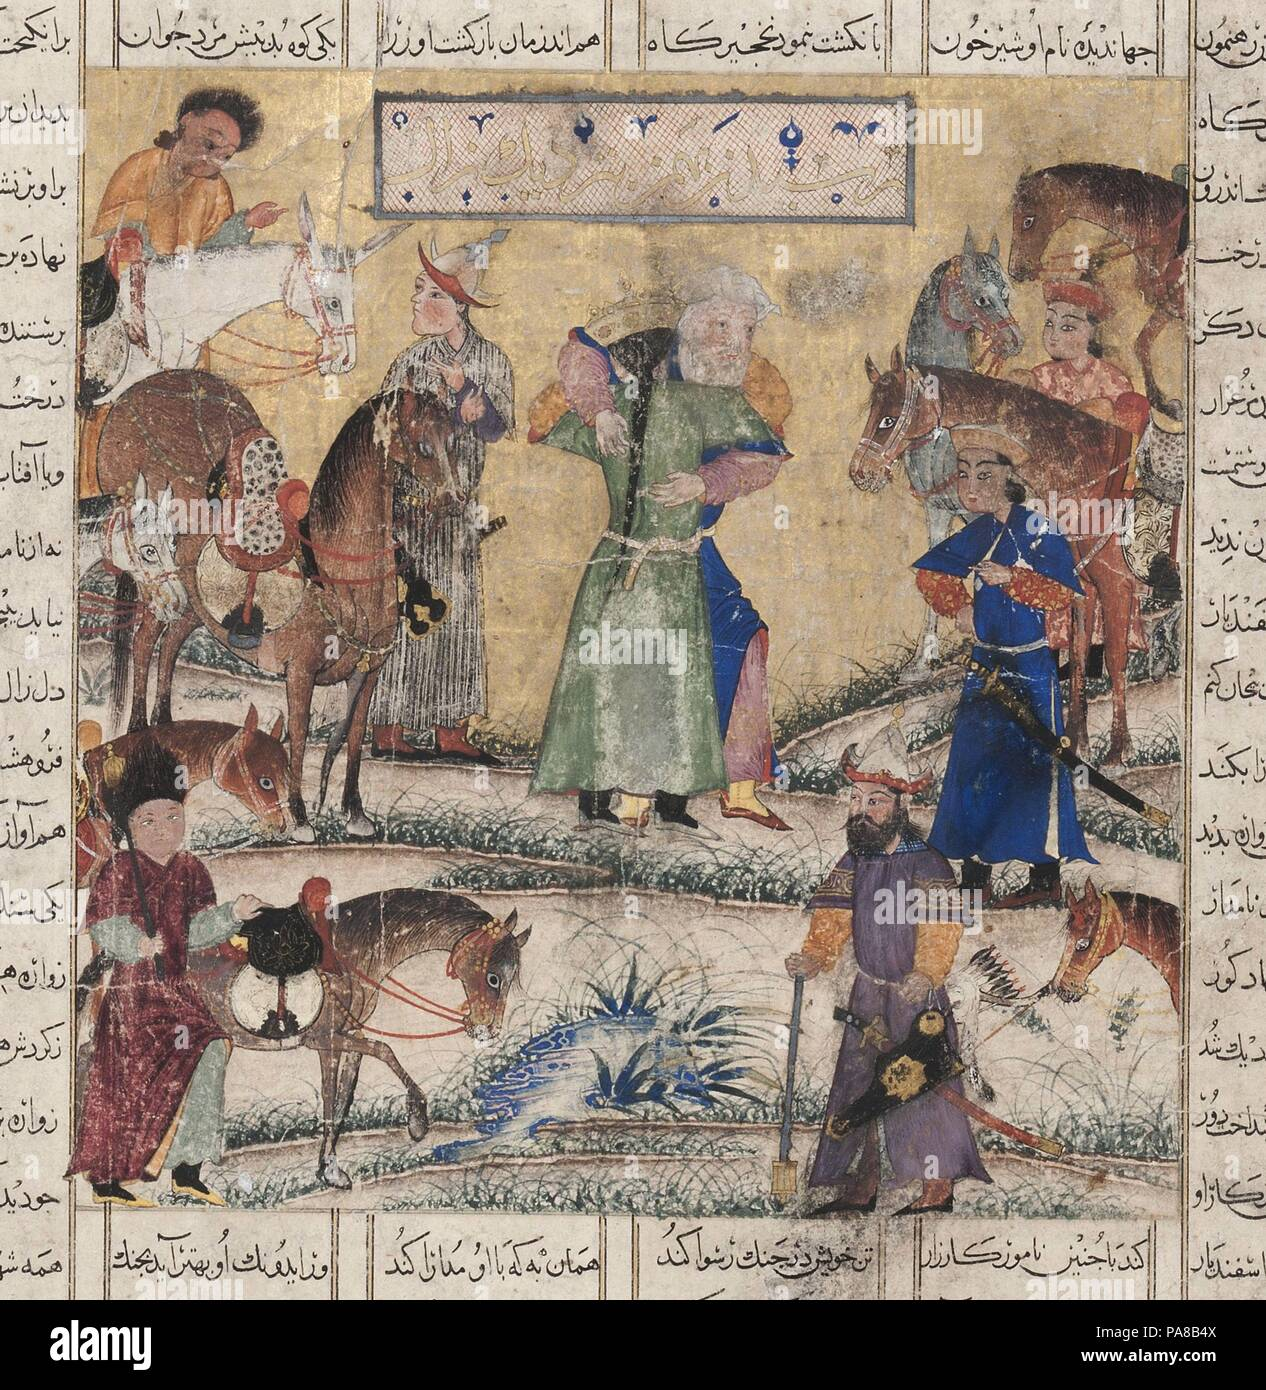 Bahman meets Zal. From the Shahnama (Book of Kings). Museum: Musée d'art et d'histoire, Genf. - Stock Image